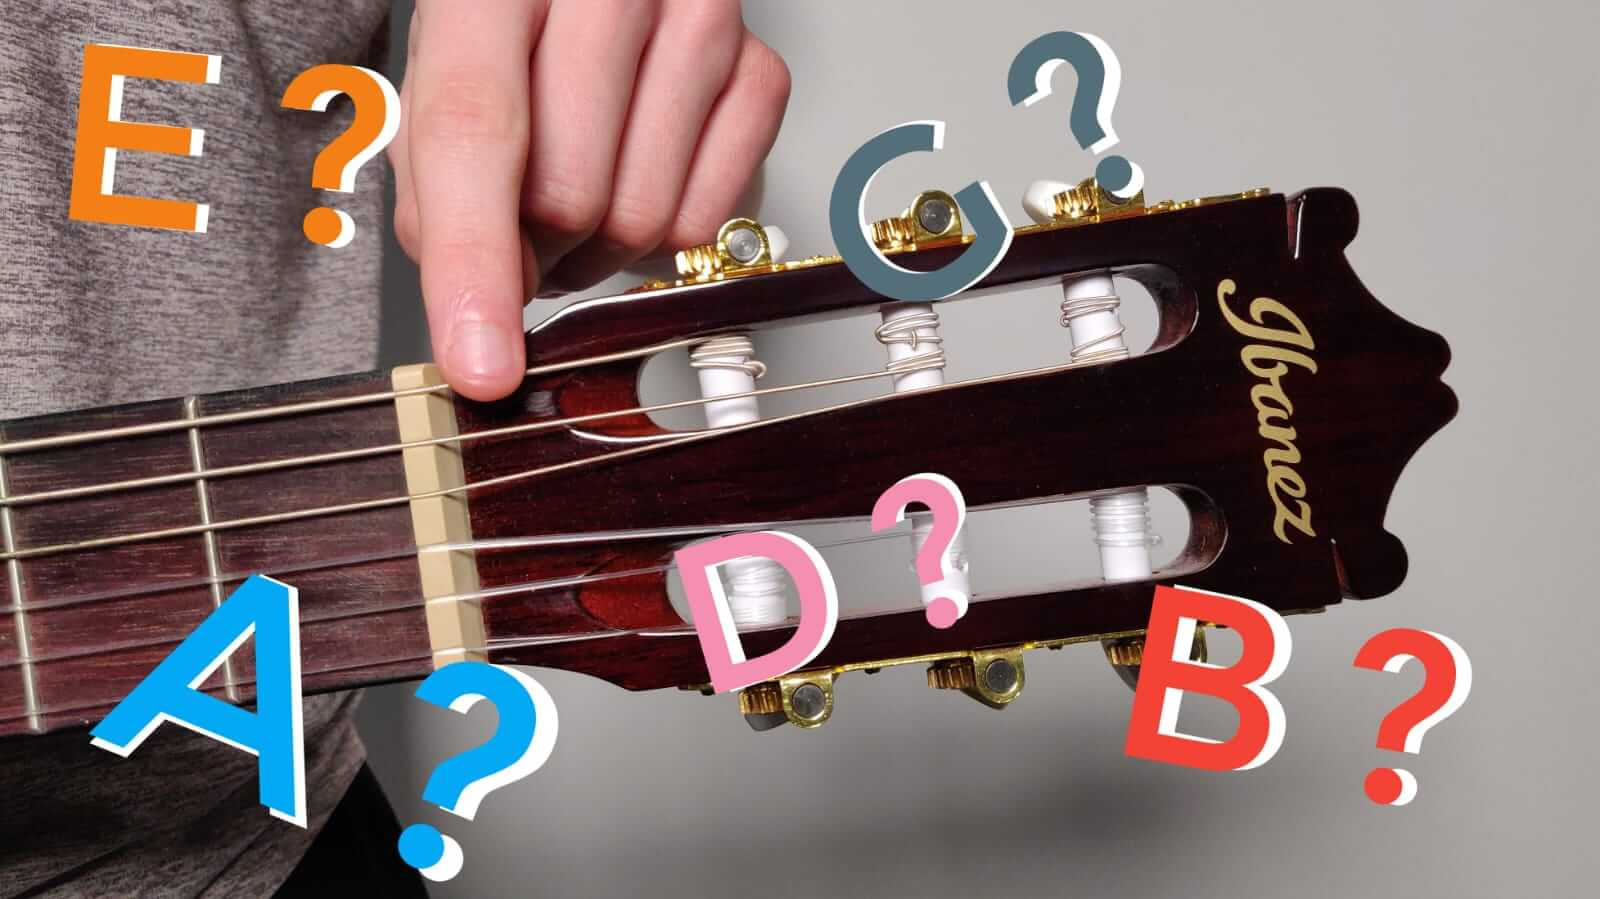 You are currently viewing 5 Easy Ways to Remember the 6 Guitar String Names